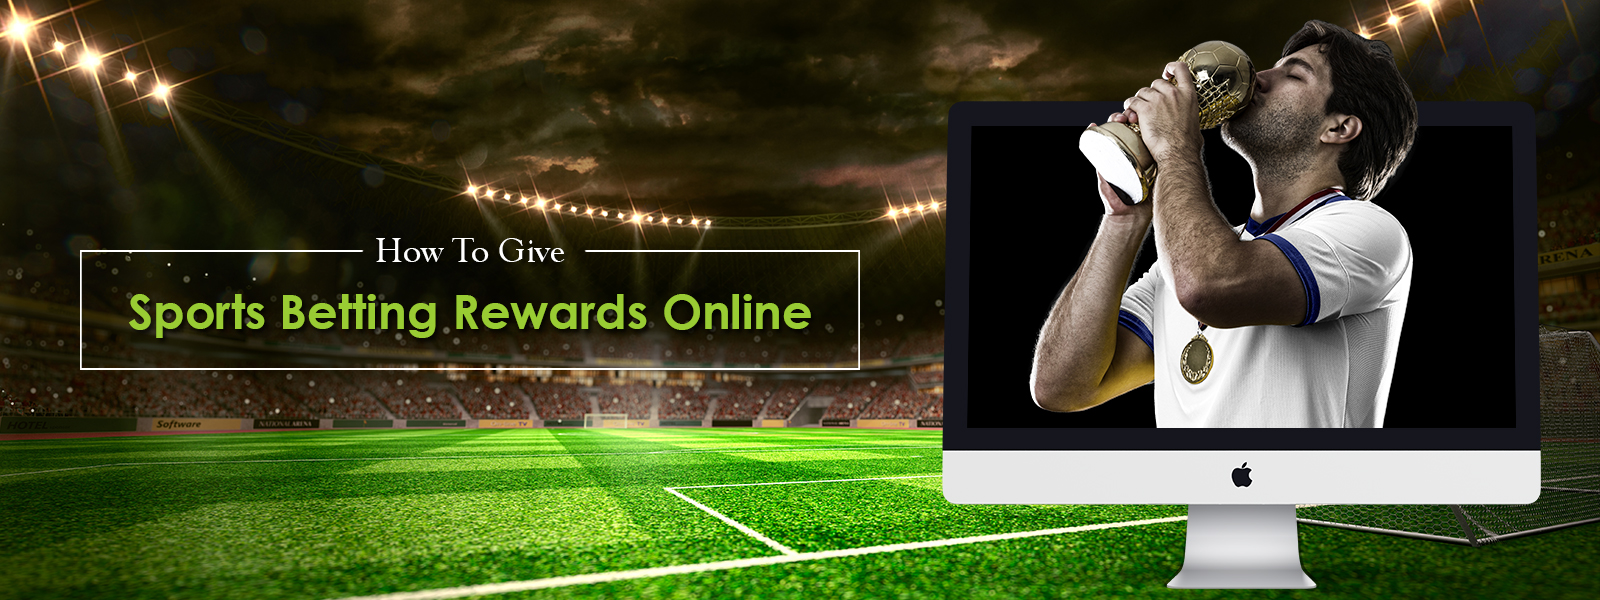 How To Give Sports Betting Rewards Online Blog Featured Image